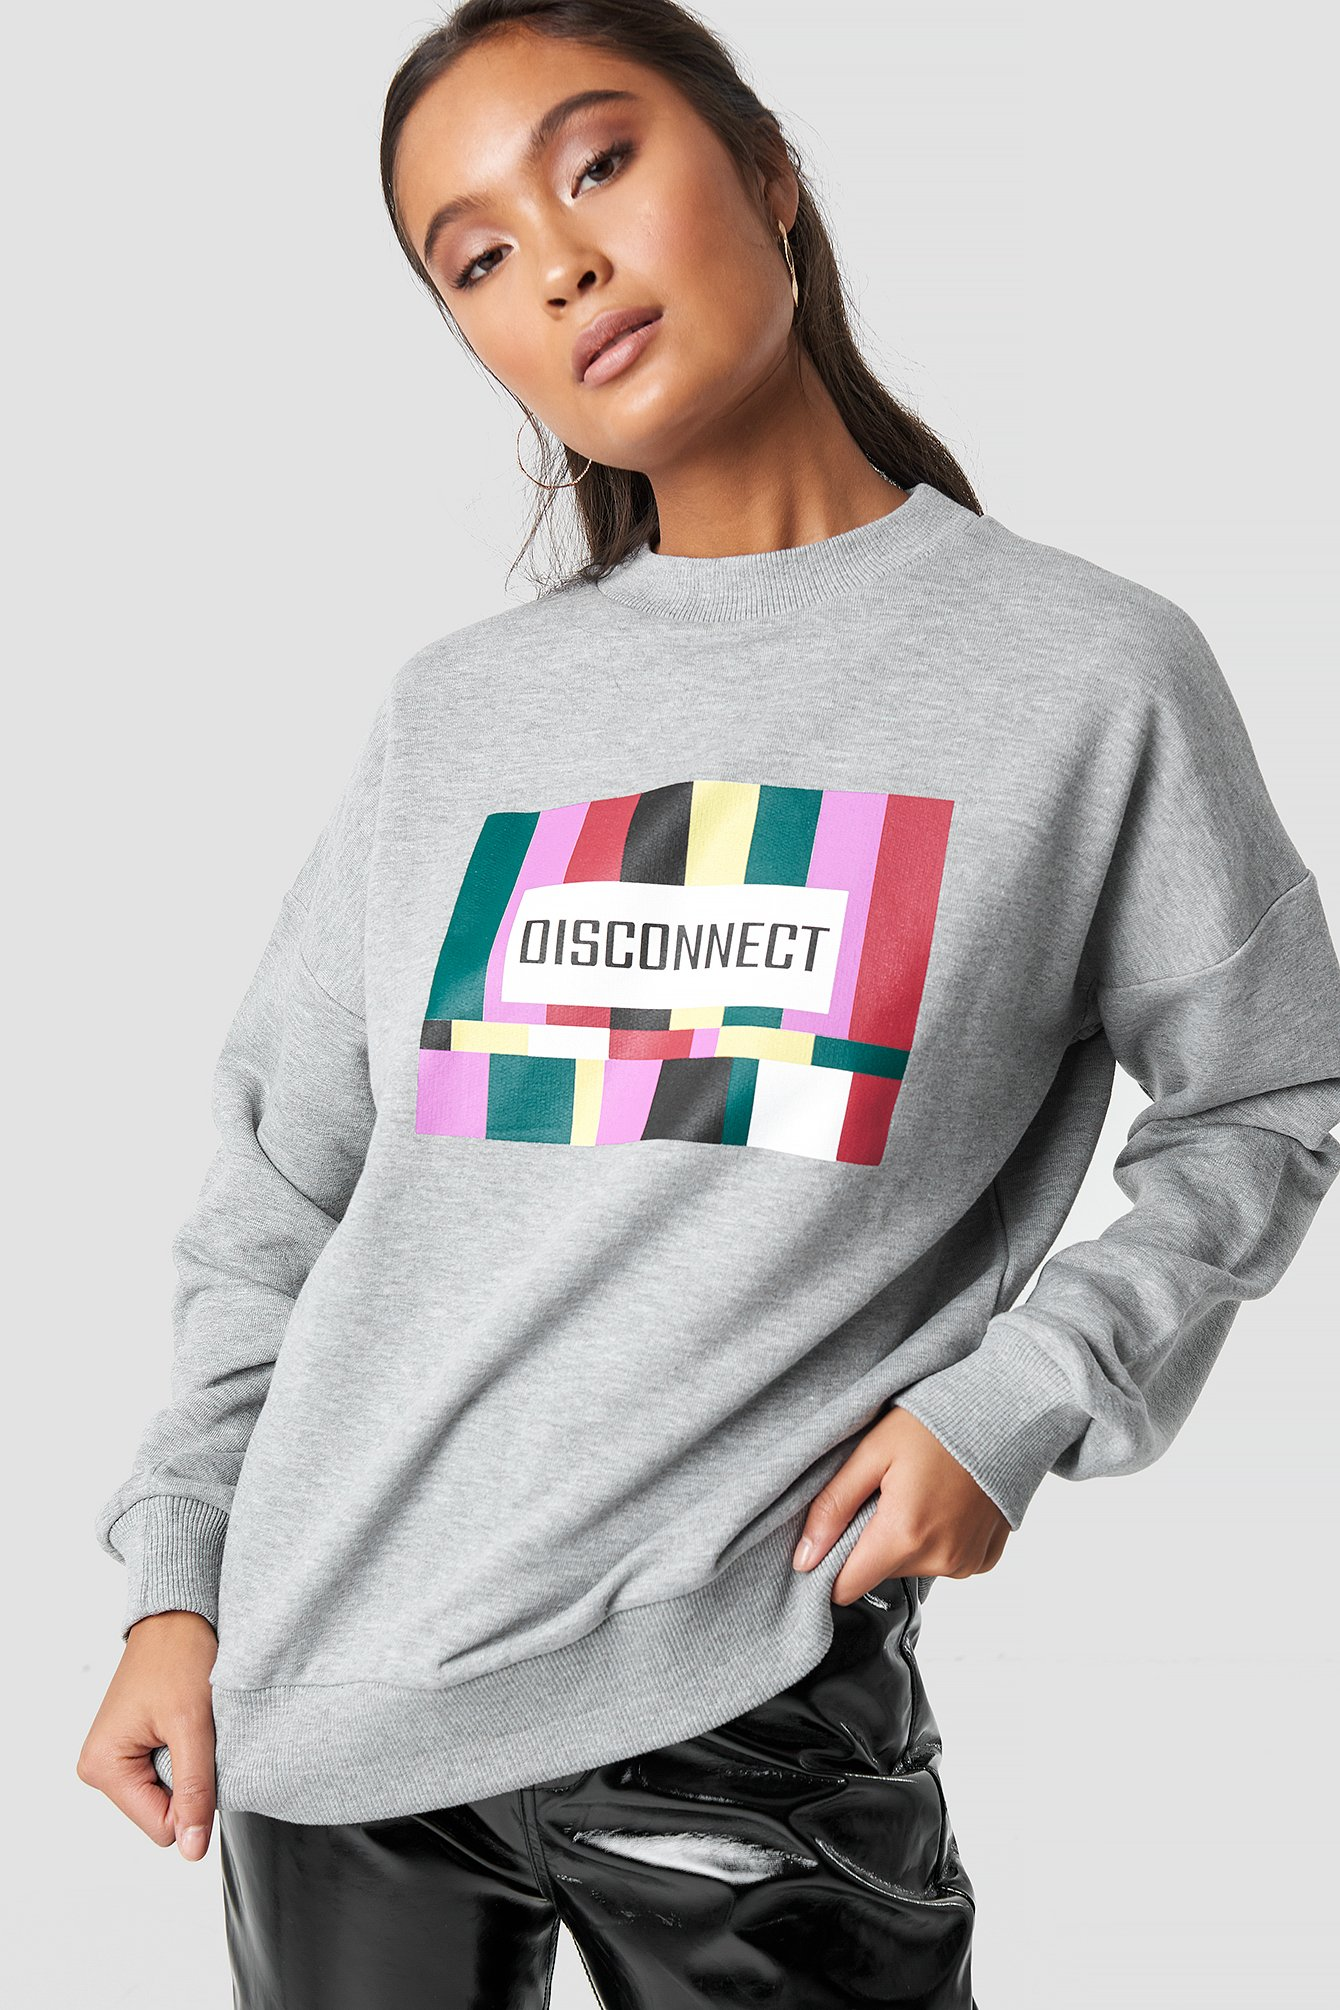 na-kd -  Disconnect Sweatshirt - Grey